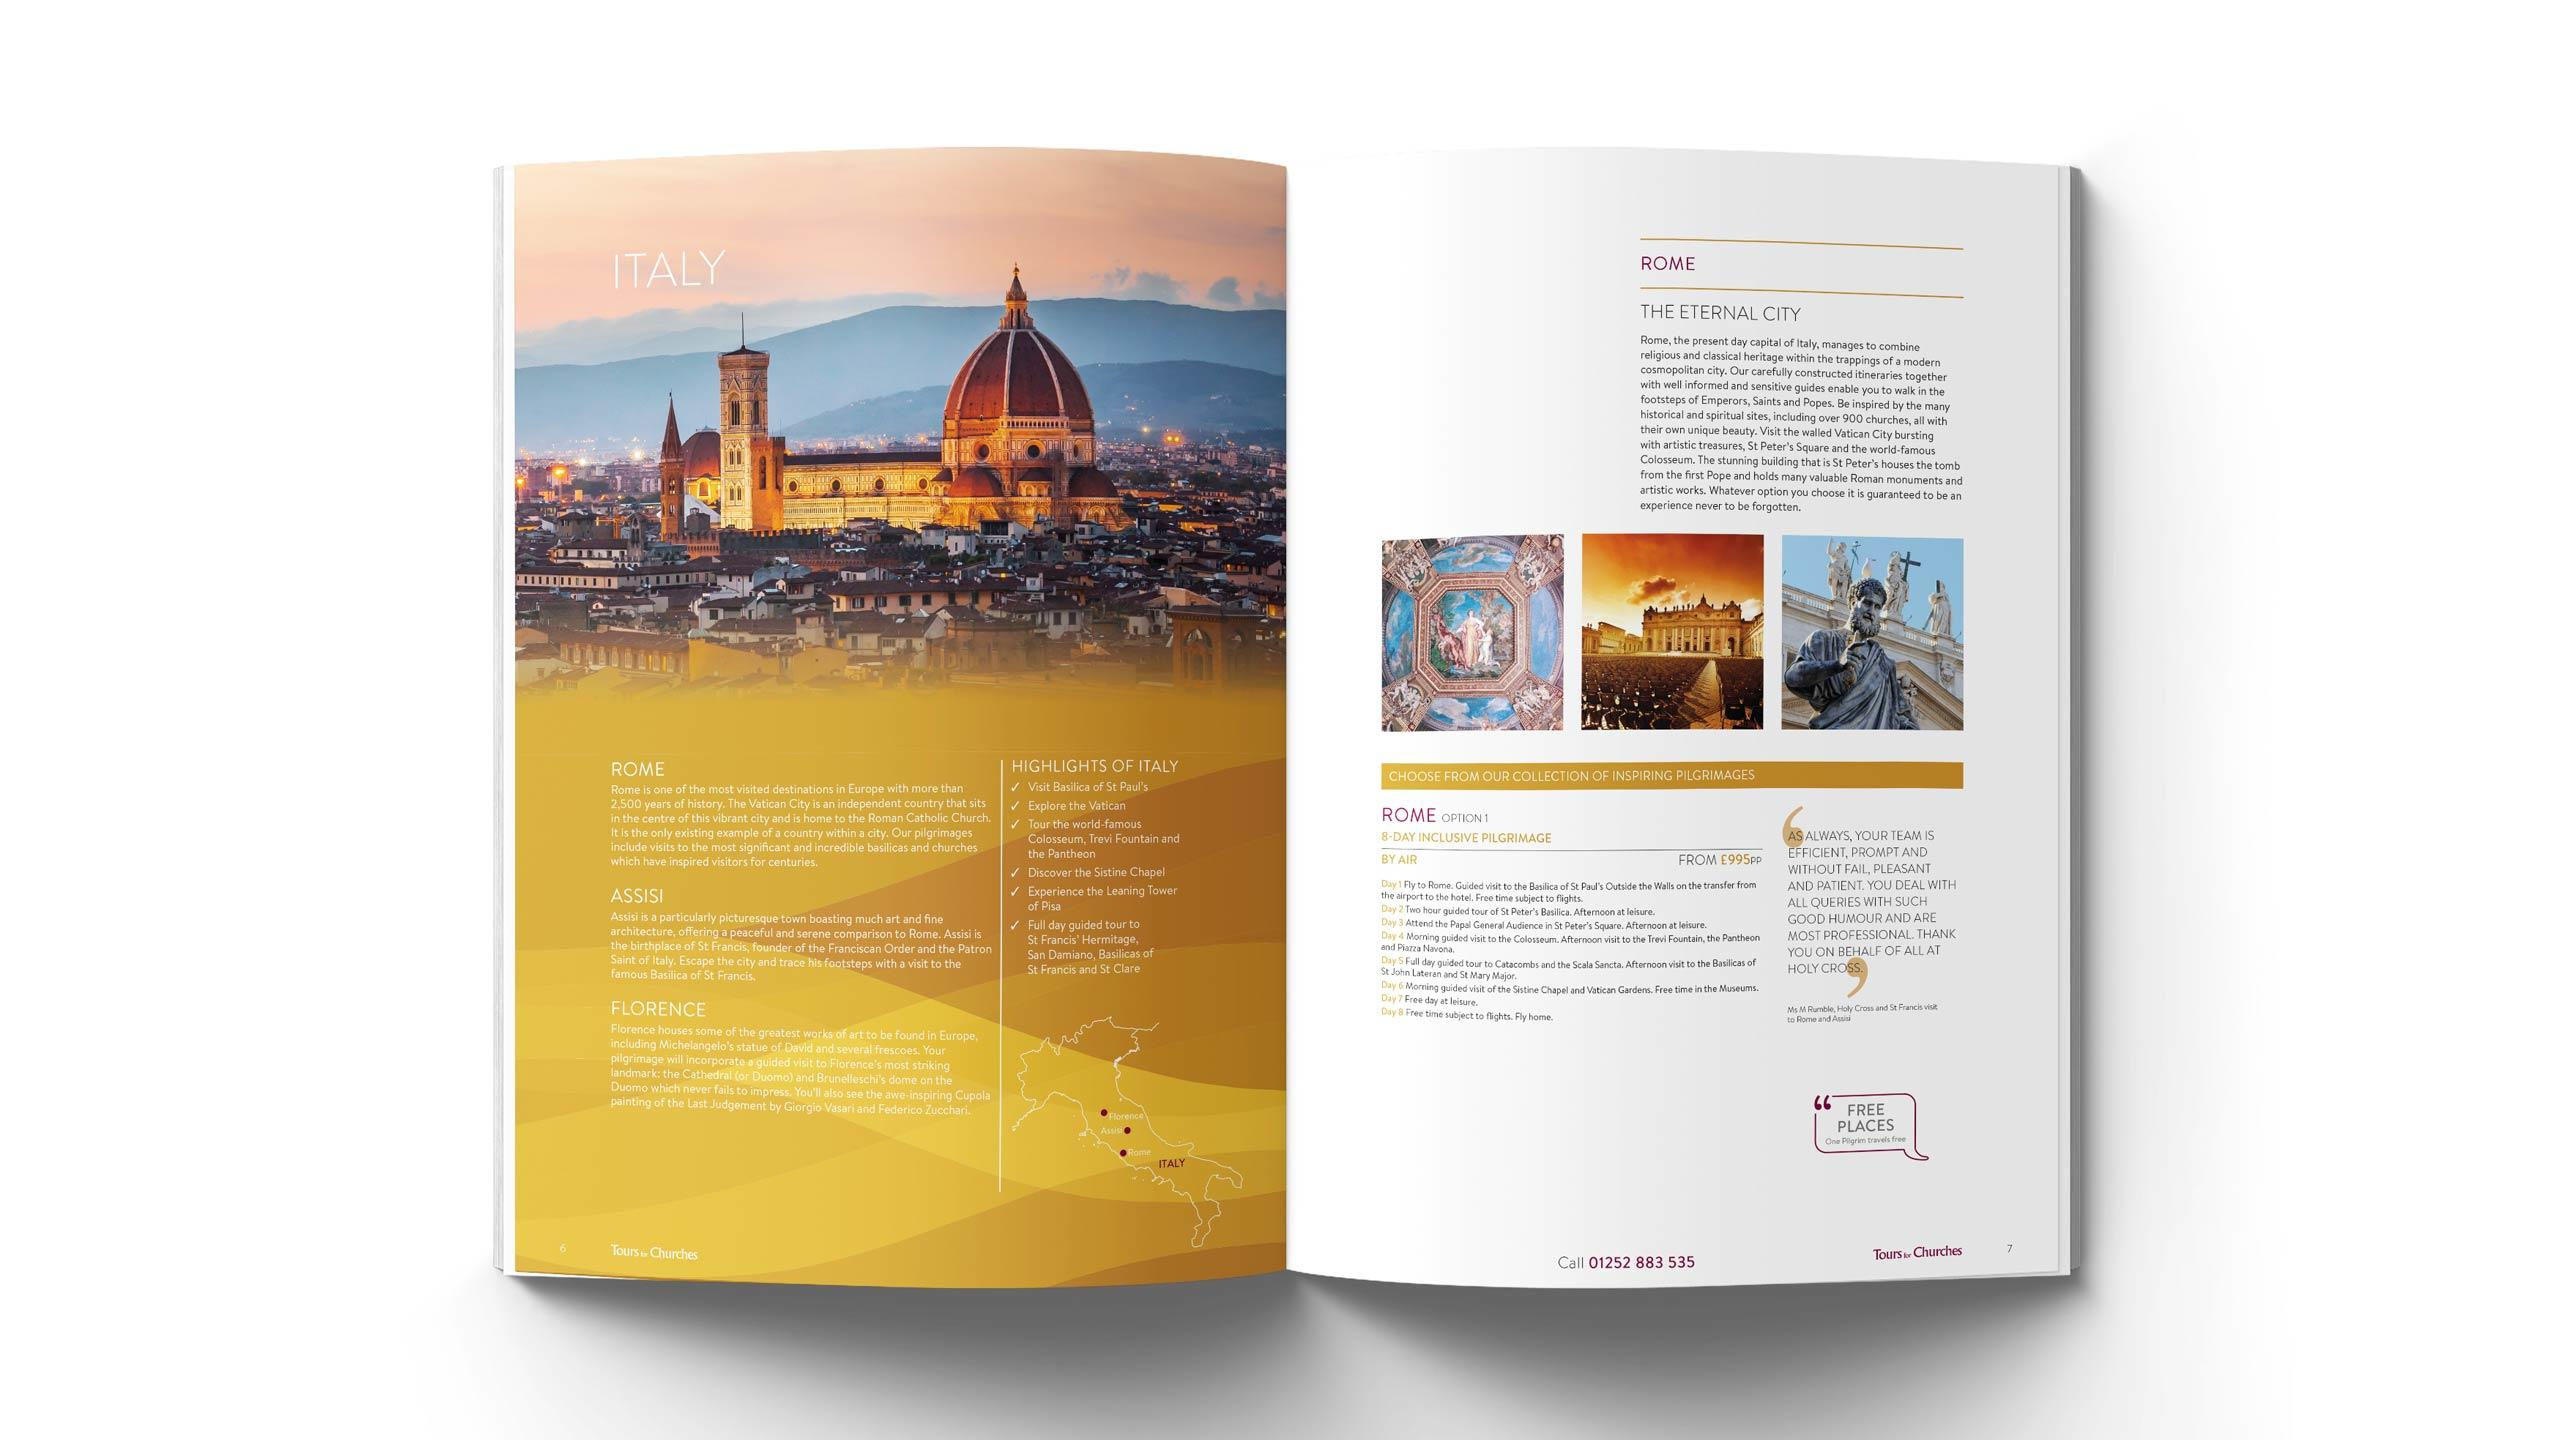 religious tours brochure design the eternal city pages tours for churches